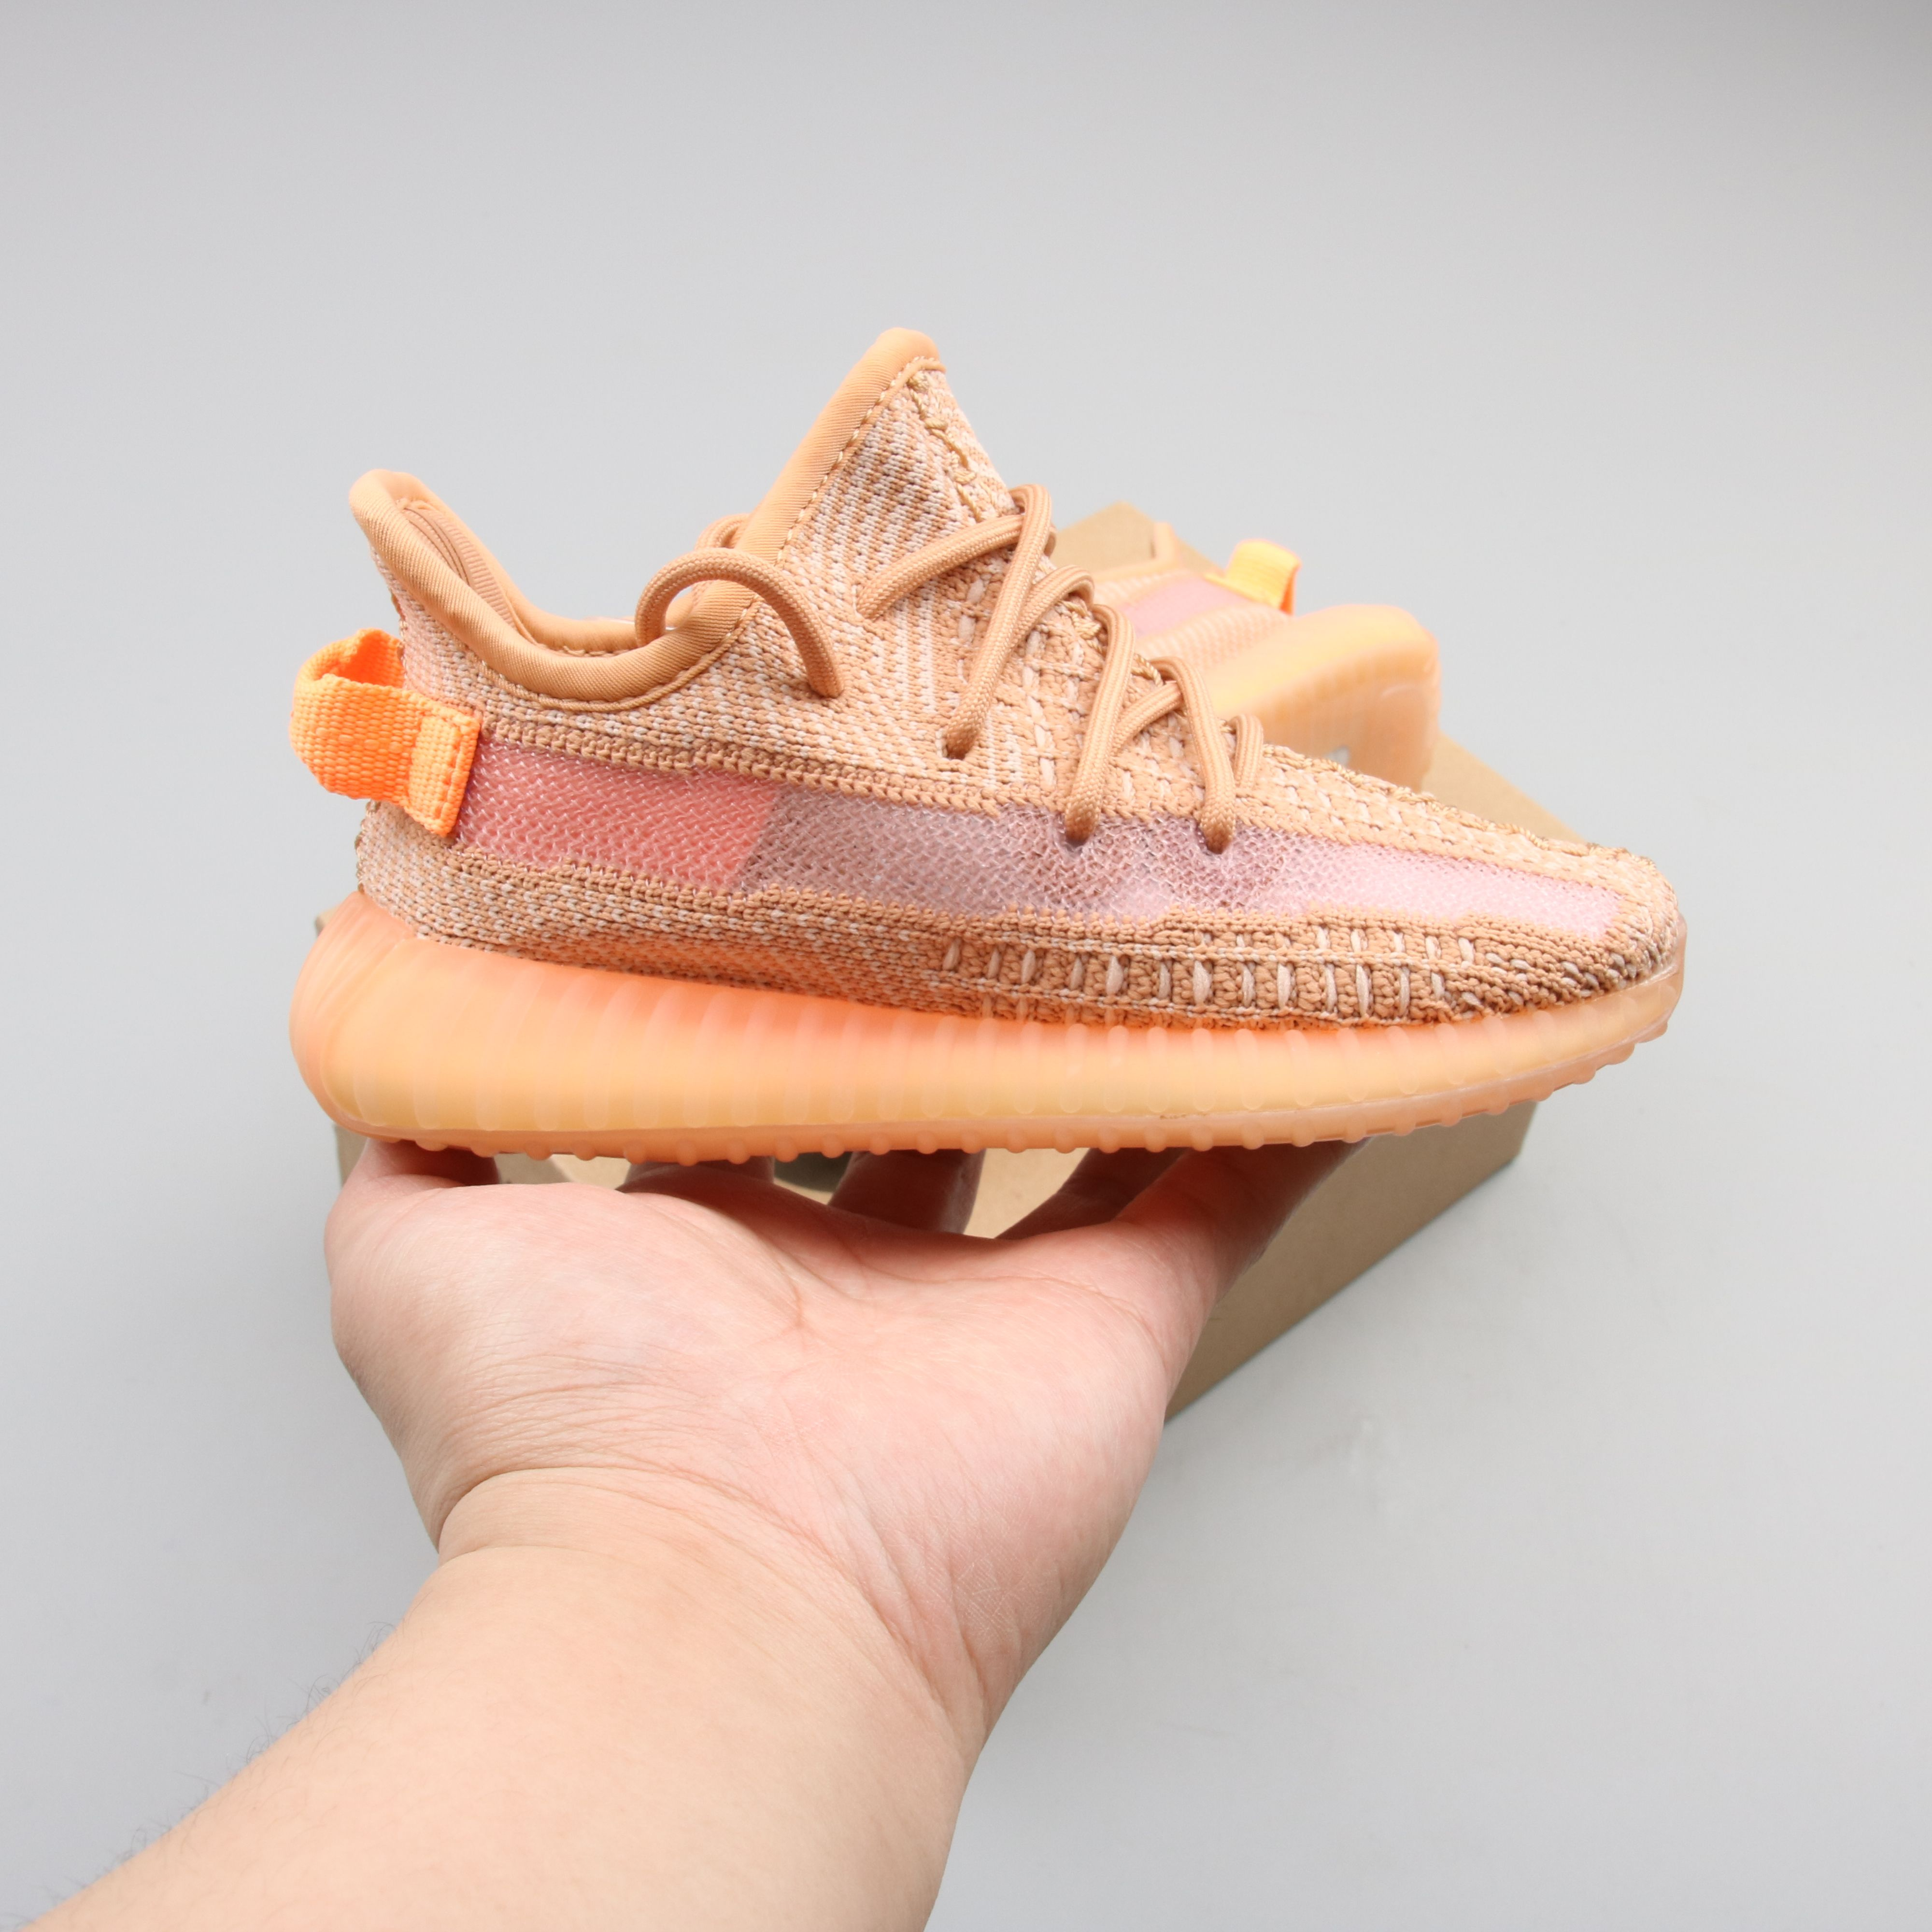 Yeezy Boost 350 V2 Infant 'Clay' Kids